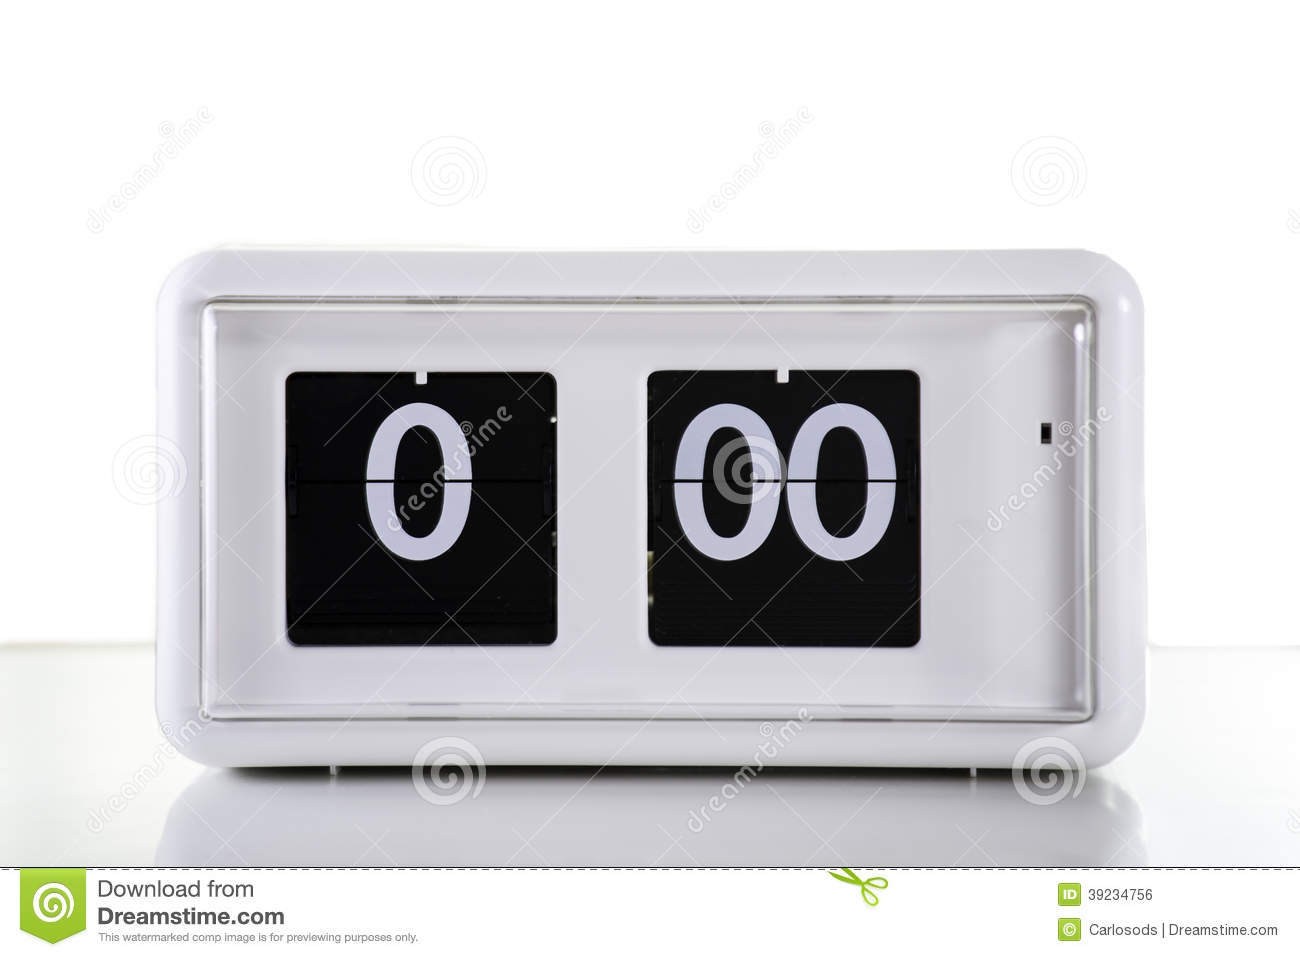 Flip Clock Stock Illustration Image 39234756: white flip clock